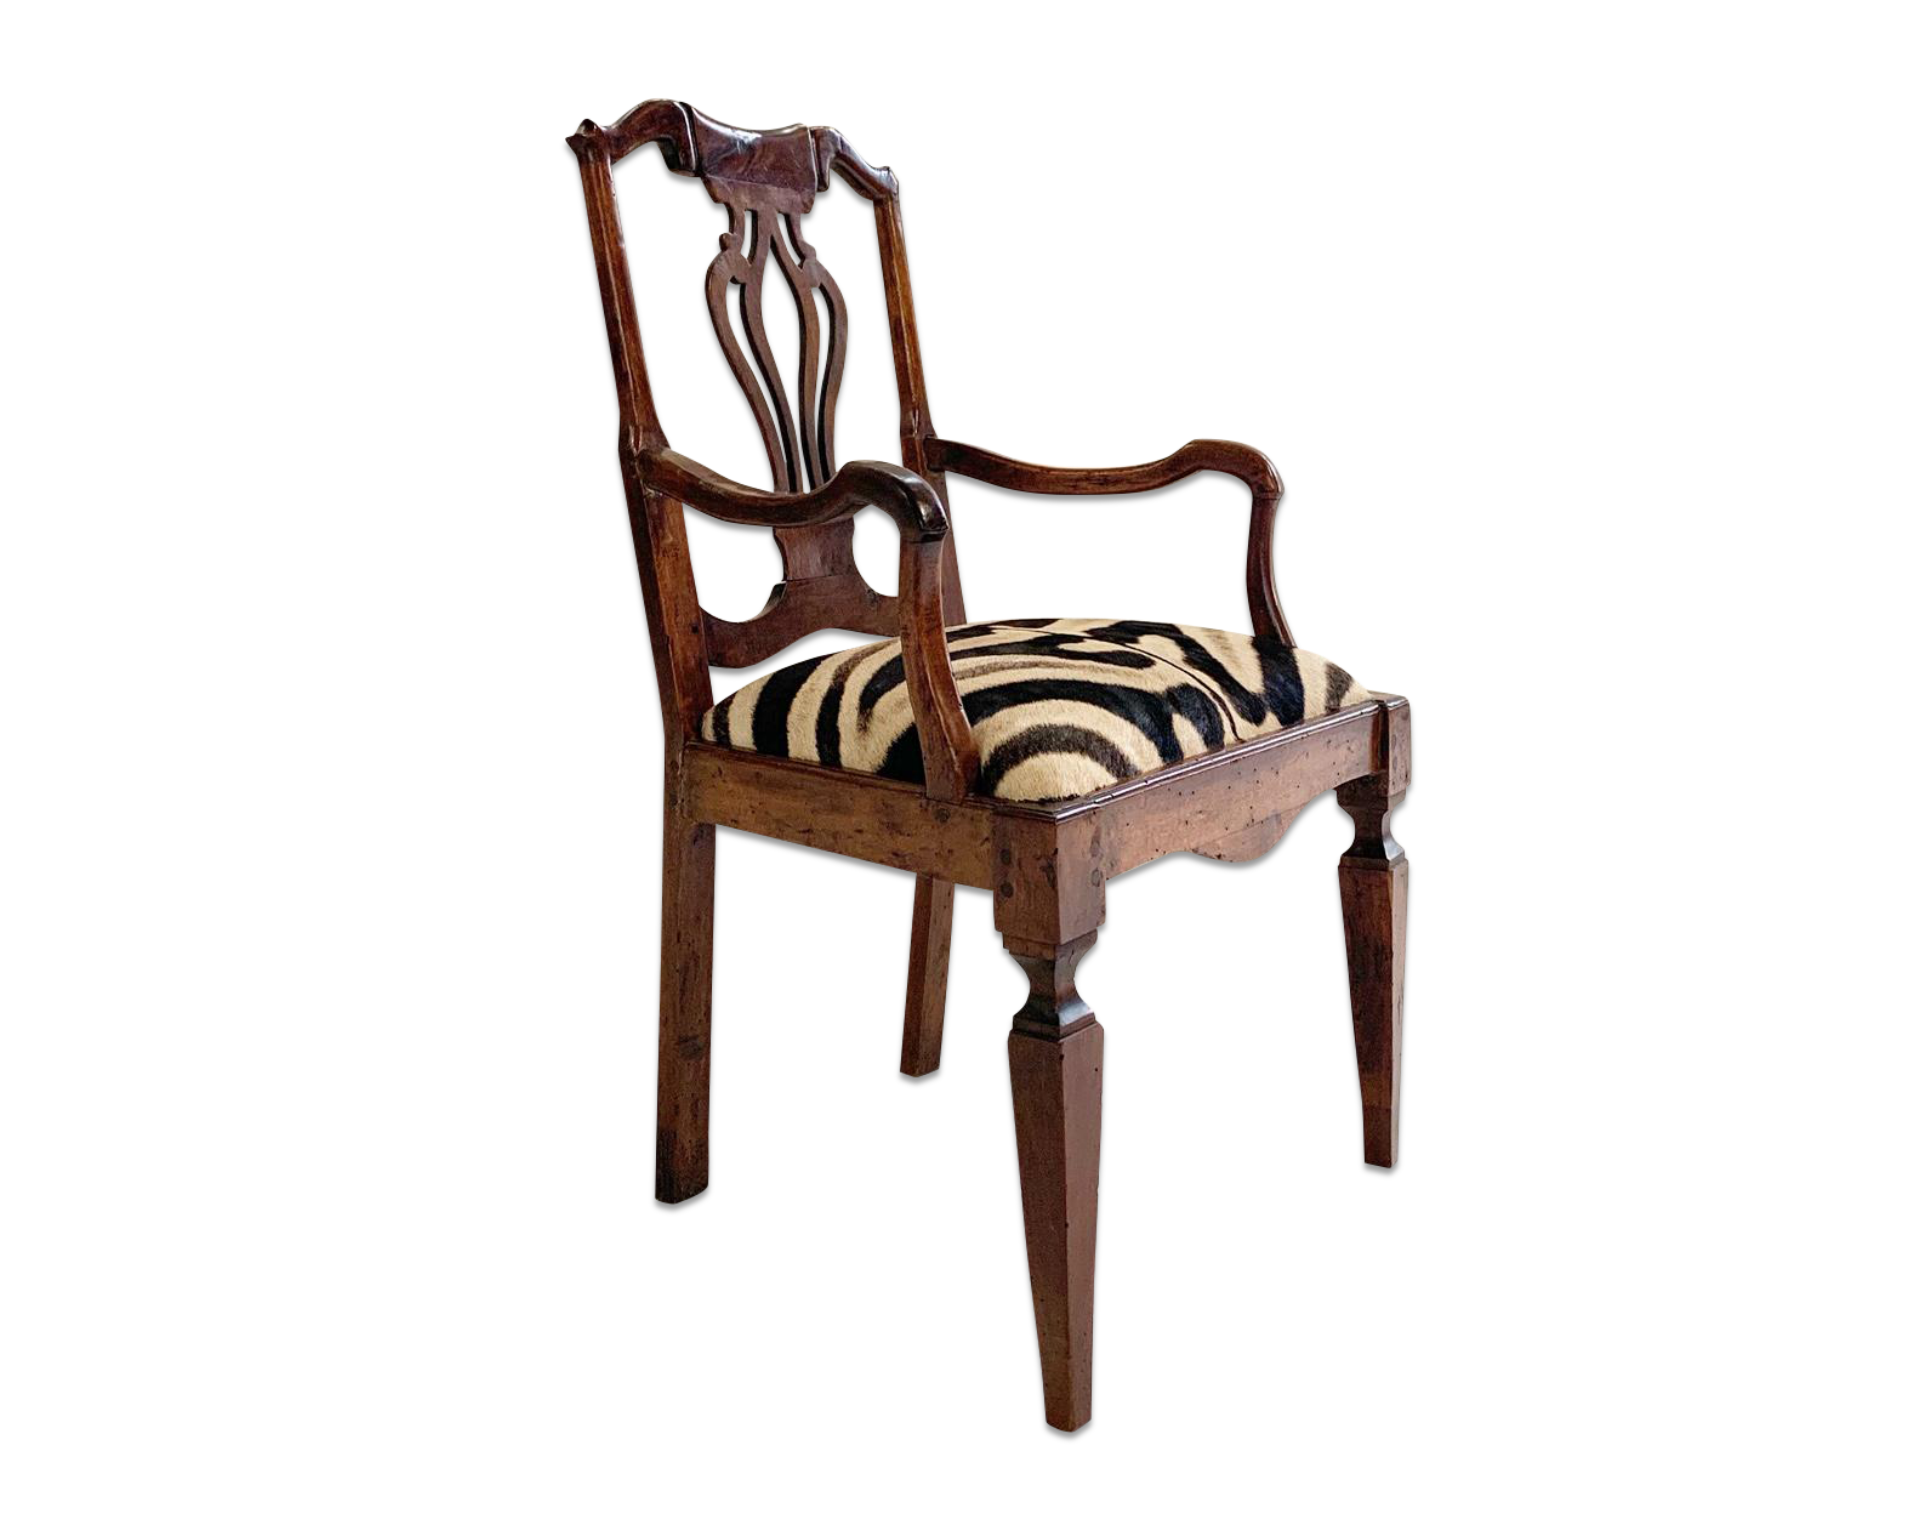 Antique Dutch Armchair in Zebra Hide